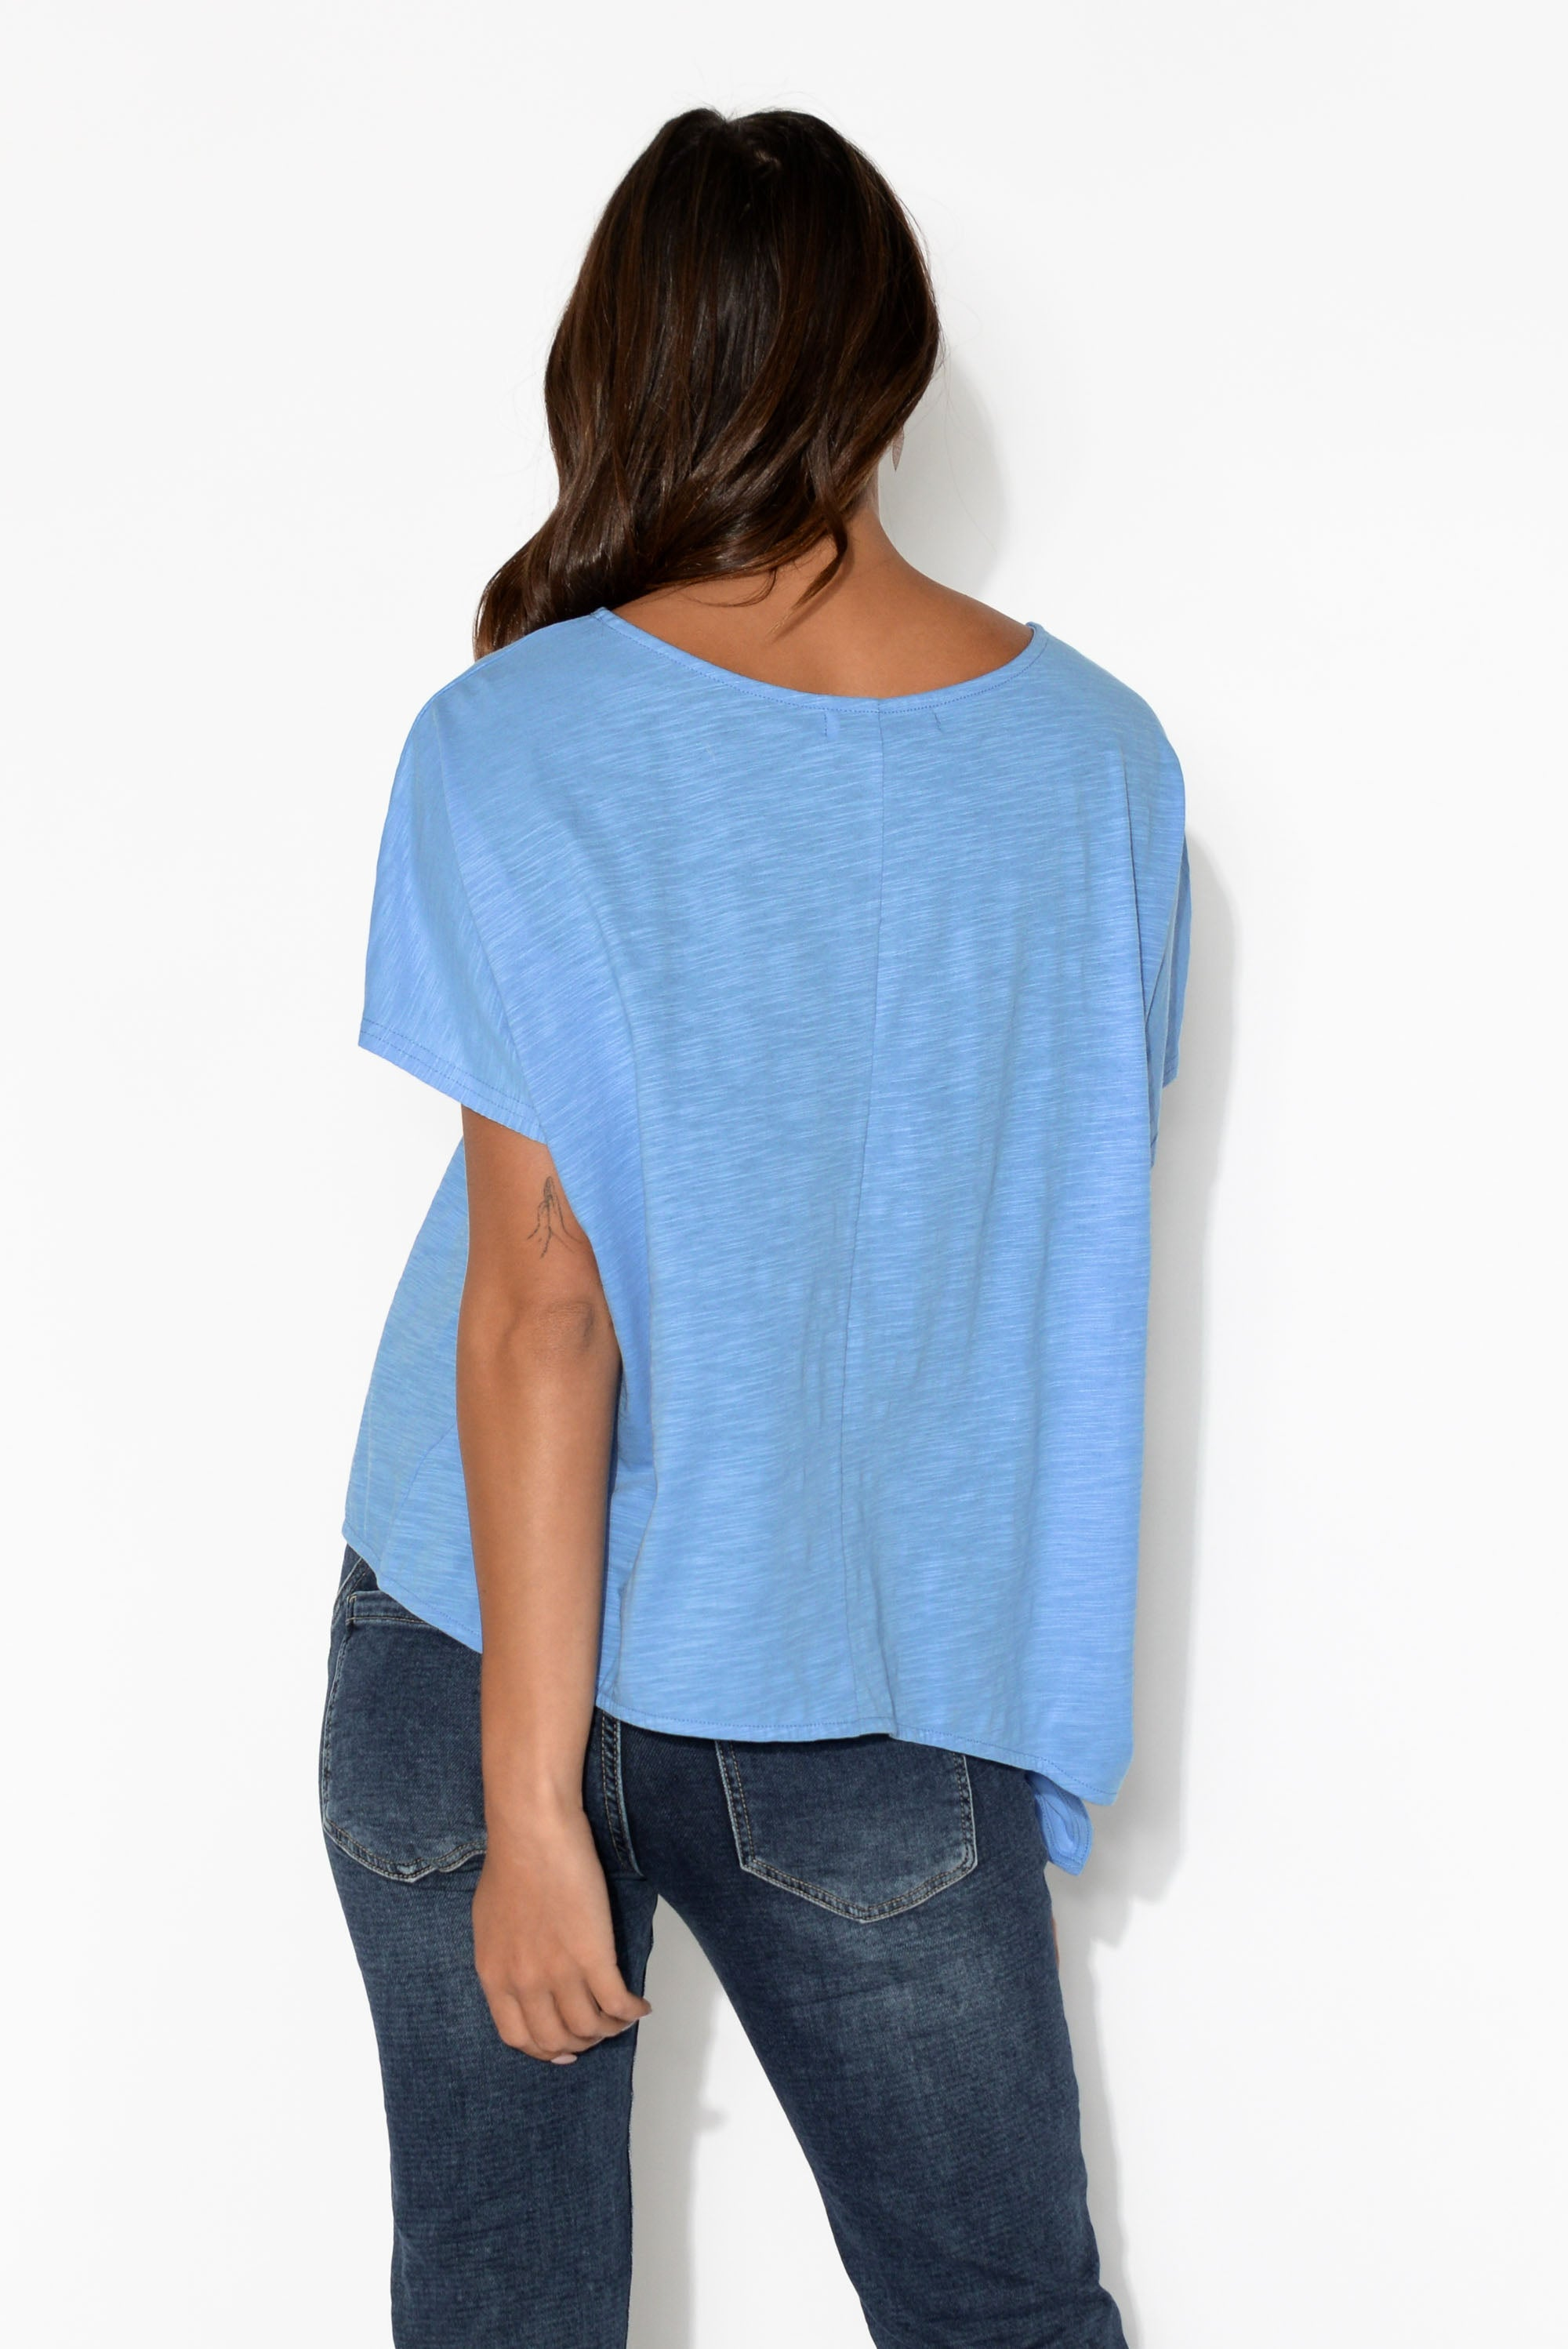 Majorca Blue Side Tie Cotton Tee